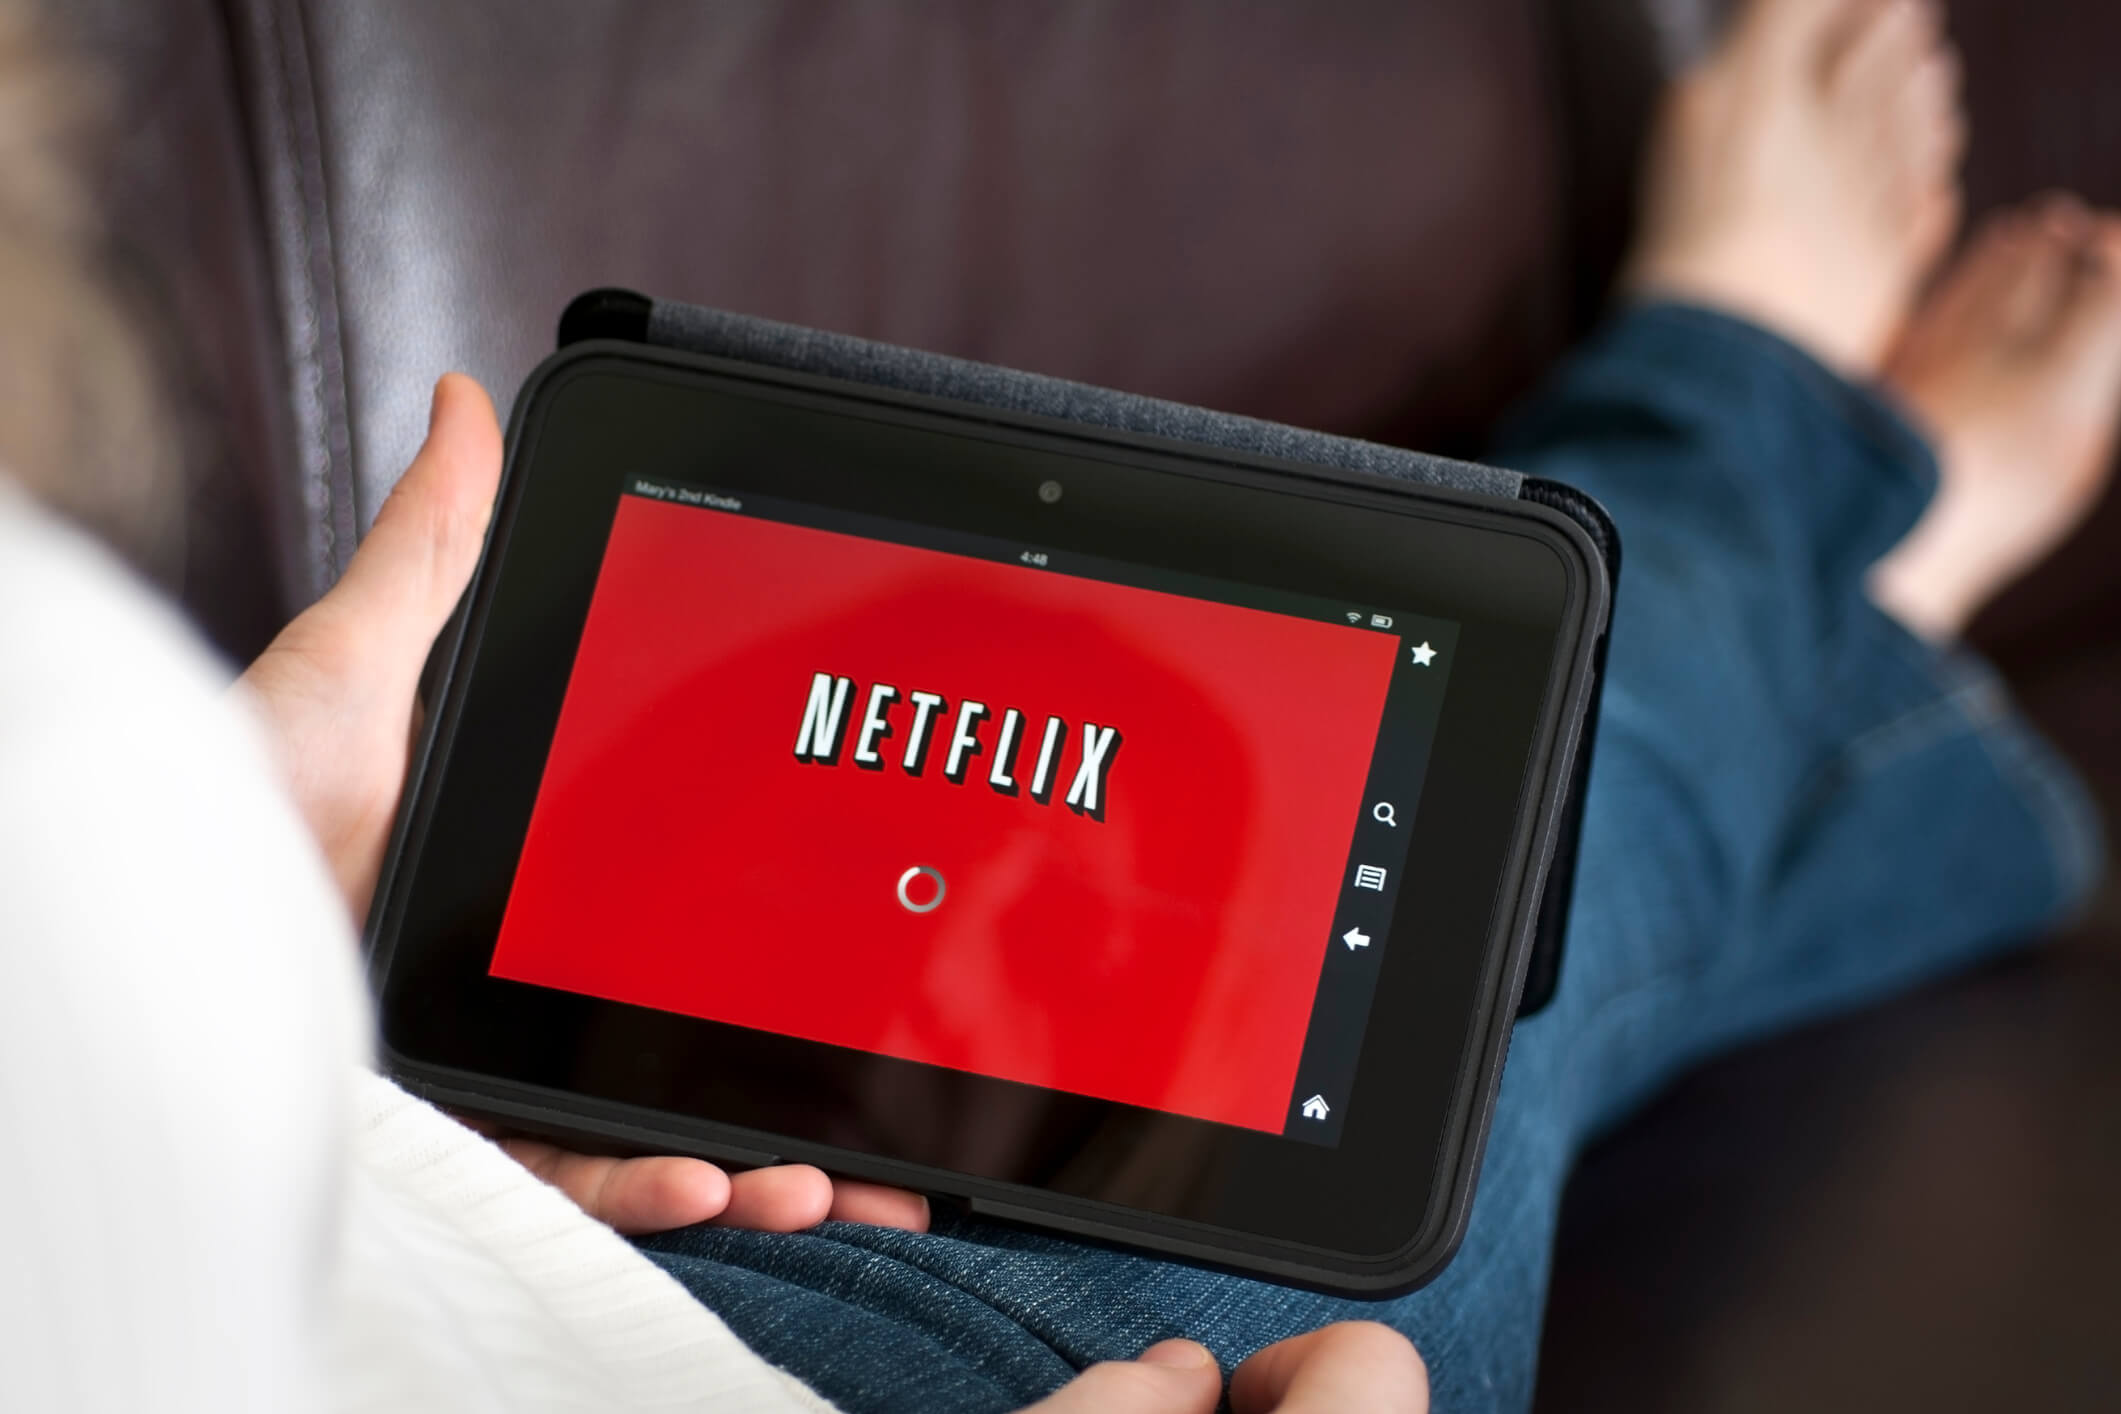 Netflix loading on a smart device